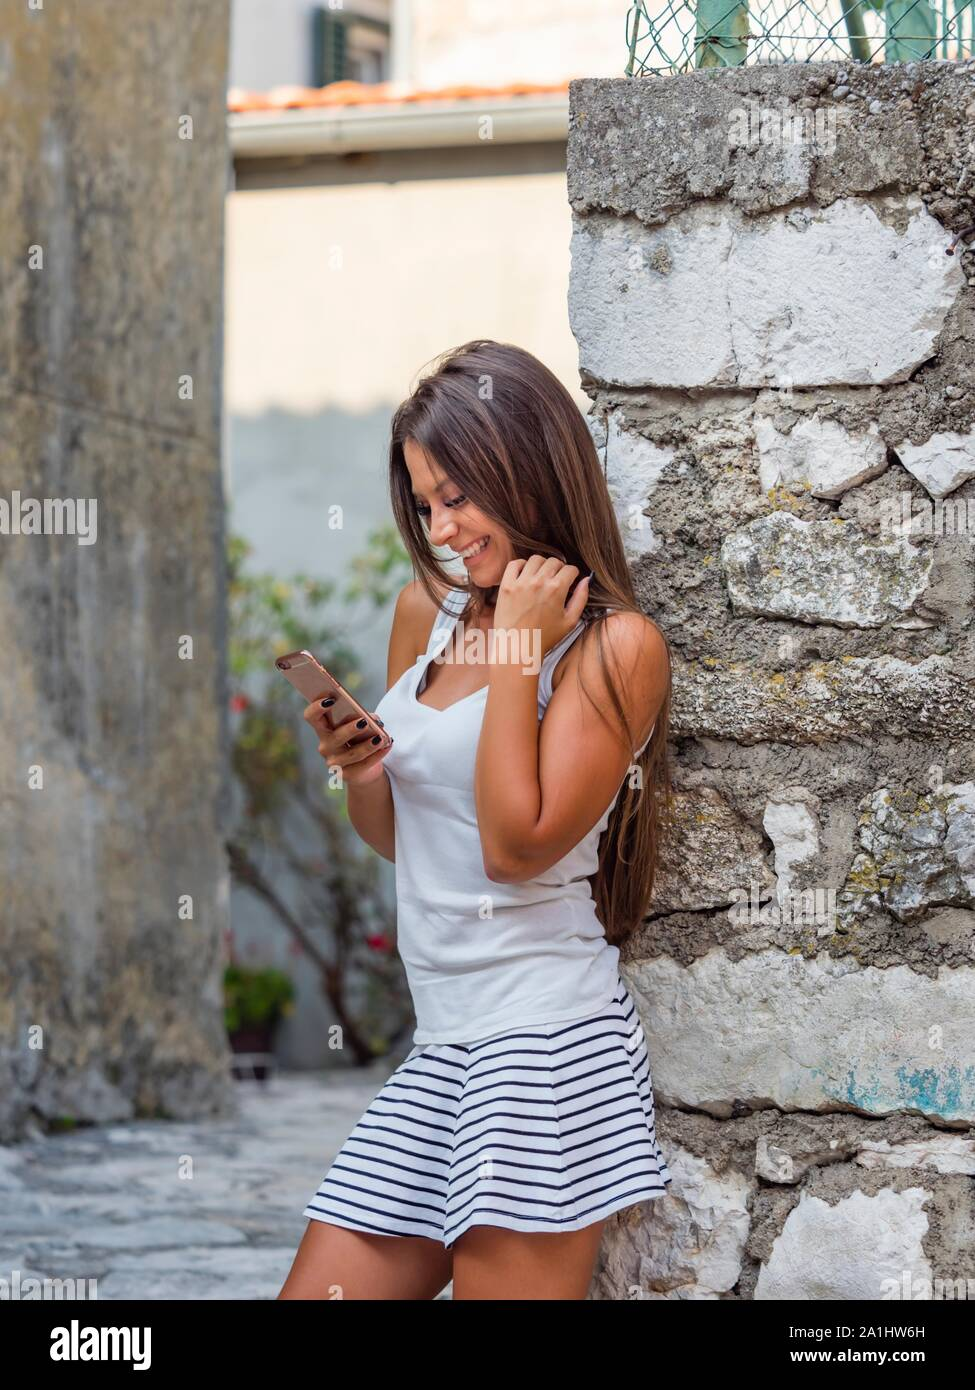 Standing looking at cellphone smartphone smiling happy reading new facebook inbox messenger message communicating message Stock Photo